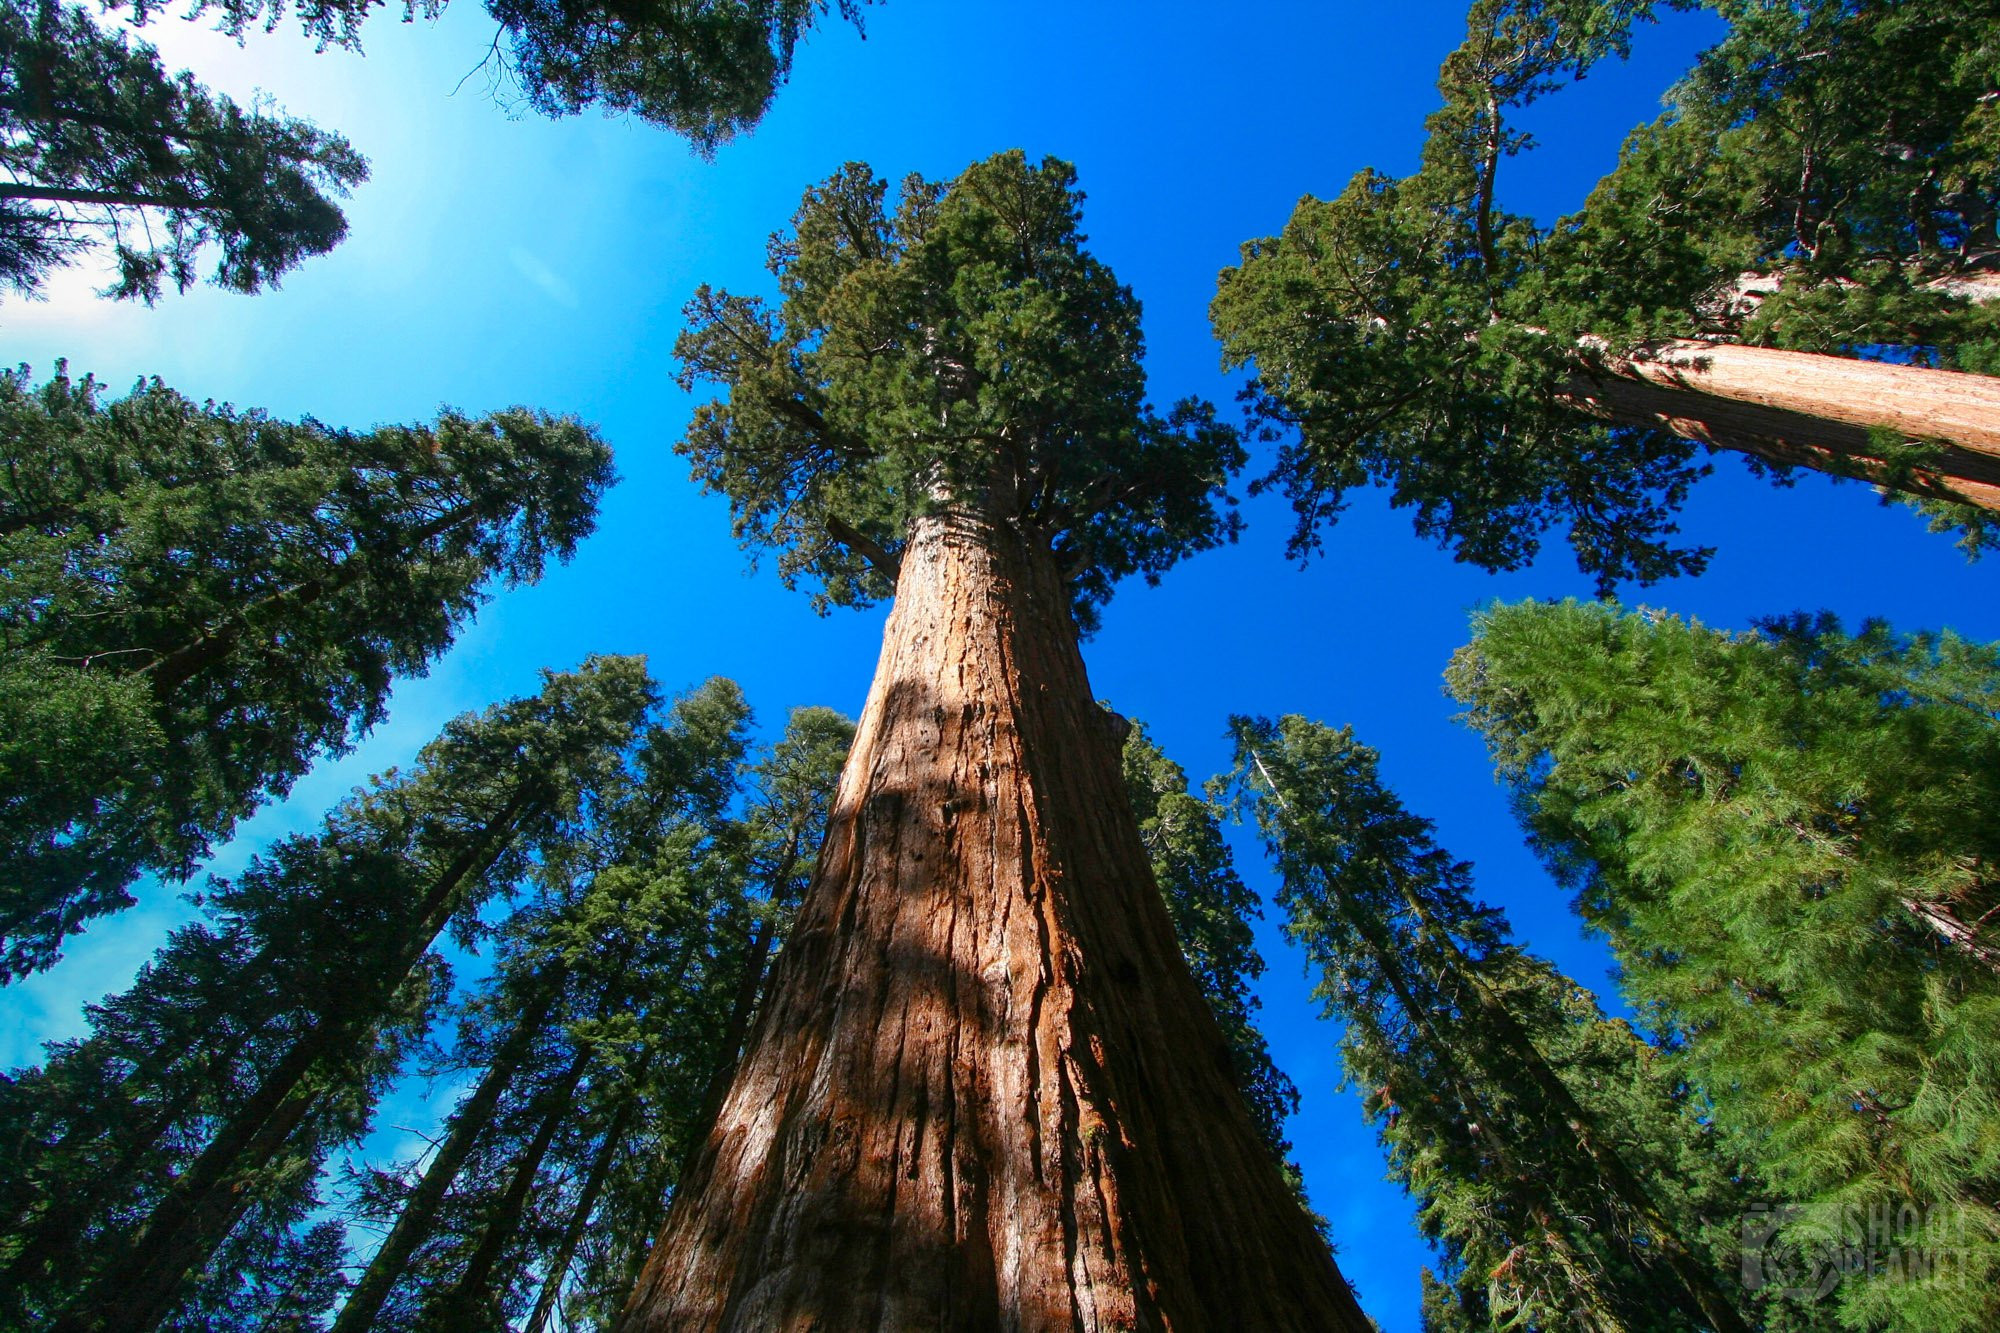 Sequoia National Park Giant forest, California USA